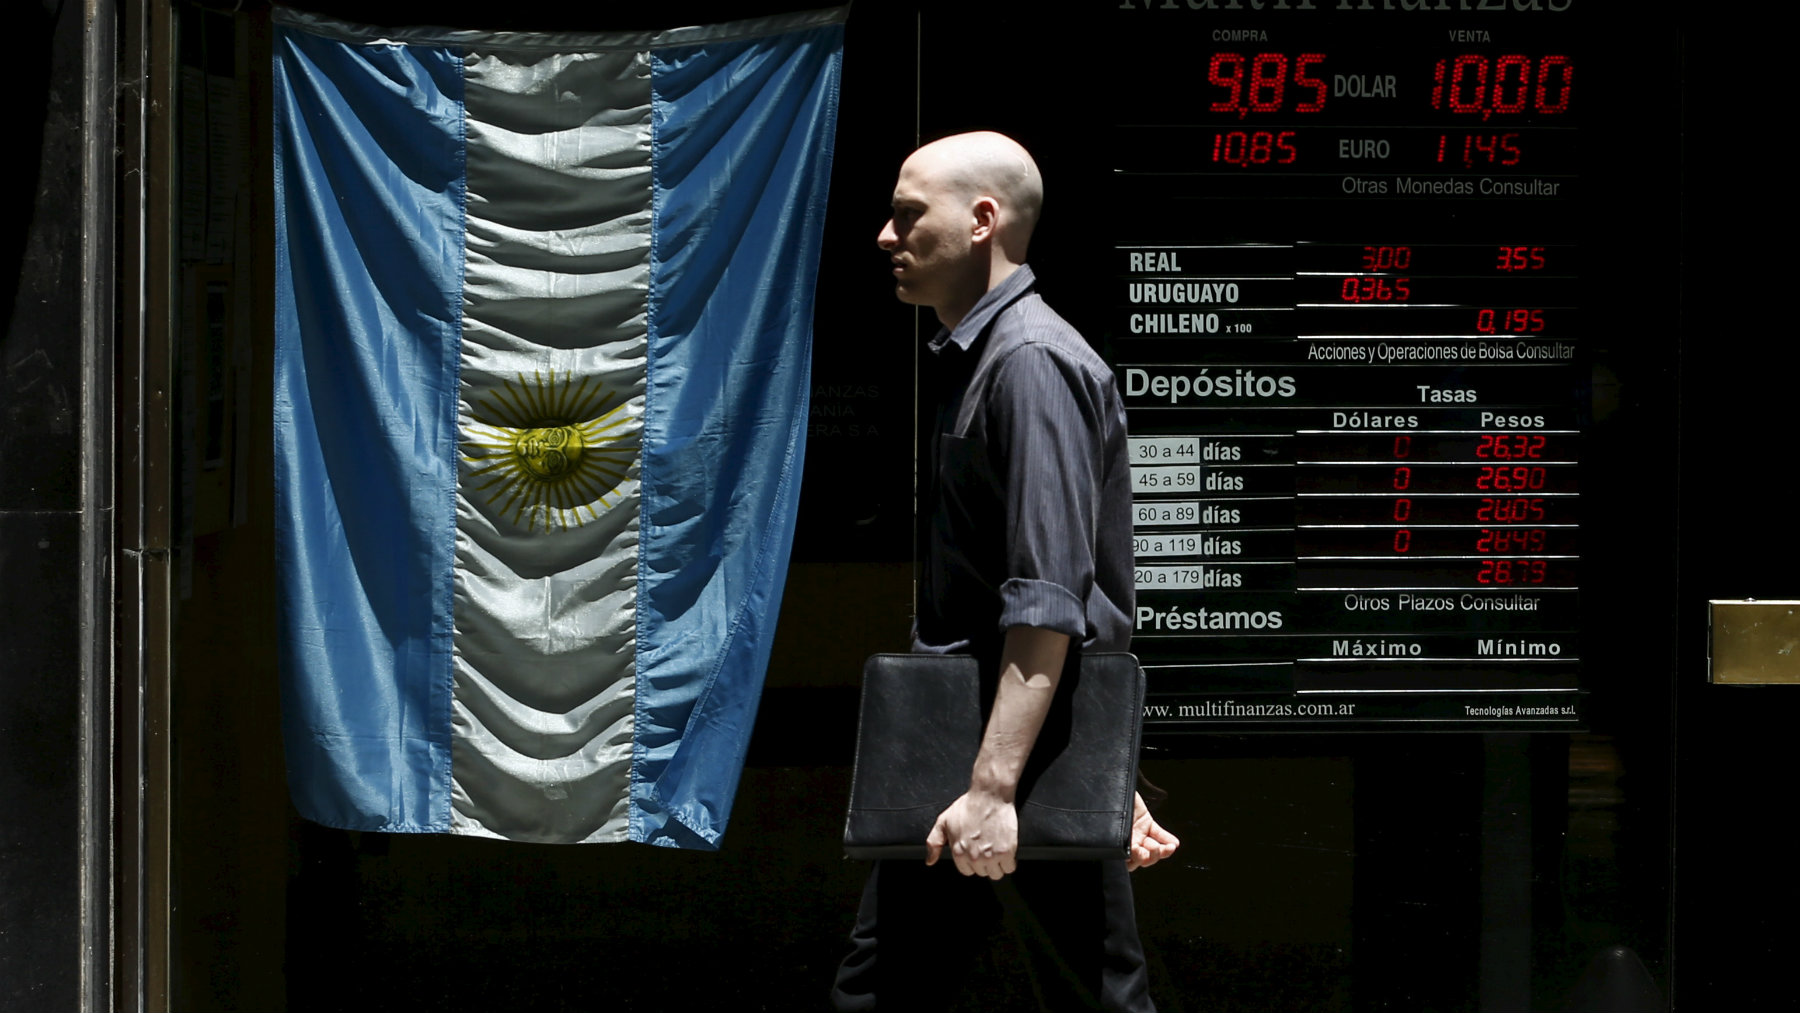 A man walks past a currency exchange rates board at a money exchange in Buenos Aires' financial district, Argentina, December 16, 2015. Argentina will announce a much anticipated relaxation of currency controls on Wednesday, the government said, setting the stage for a weakening of the local peso and an increase of soybean shipments from the world's No. 3 exporter. REUTERS/Marcos Brindicci